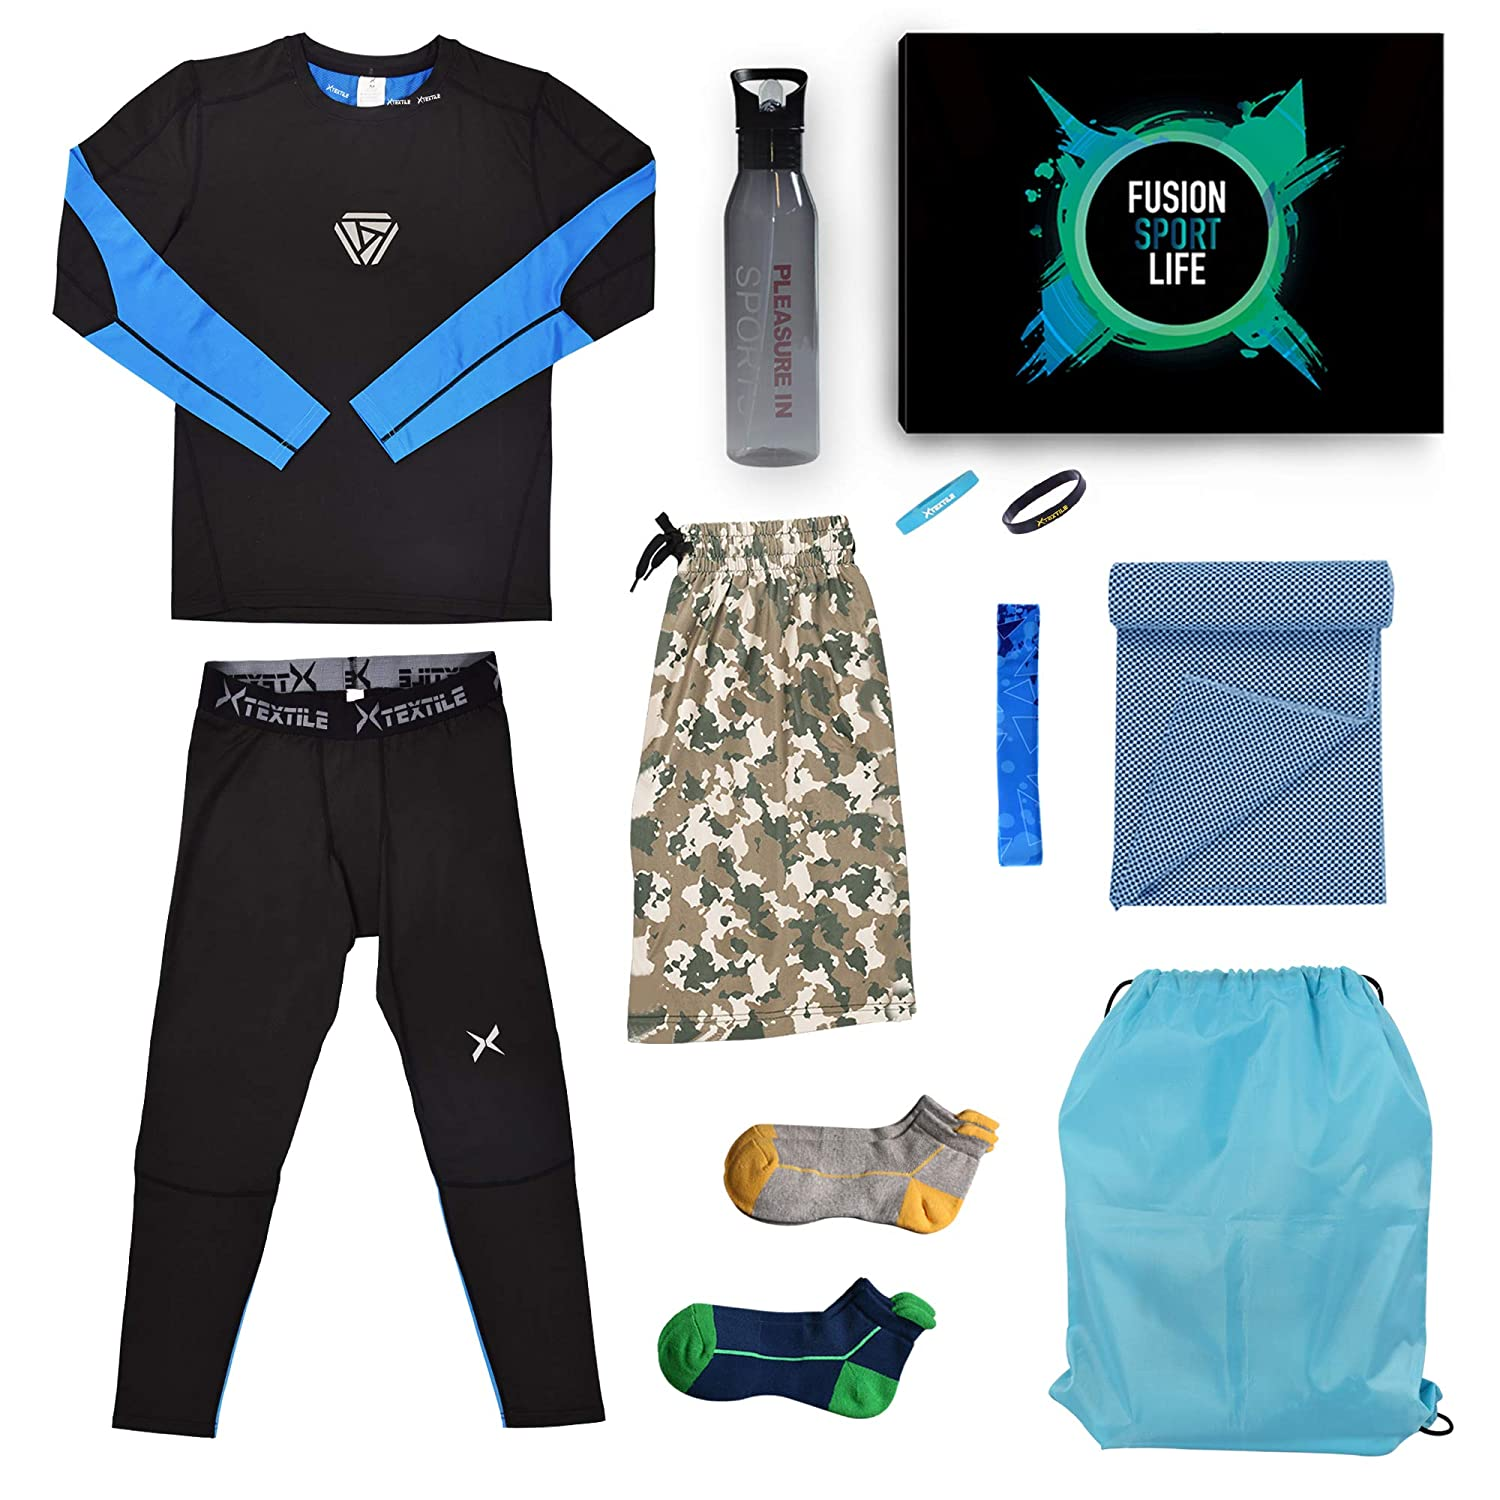 Long Sleeve Shirts and Loose Fitting Shorts Xtextile 3 Pcs Mens Workout Set with Compression Pants